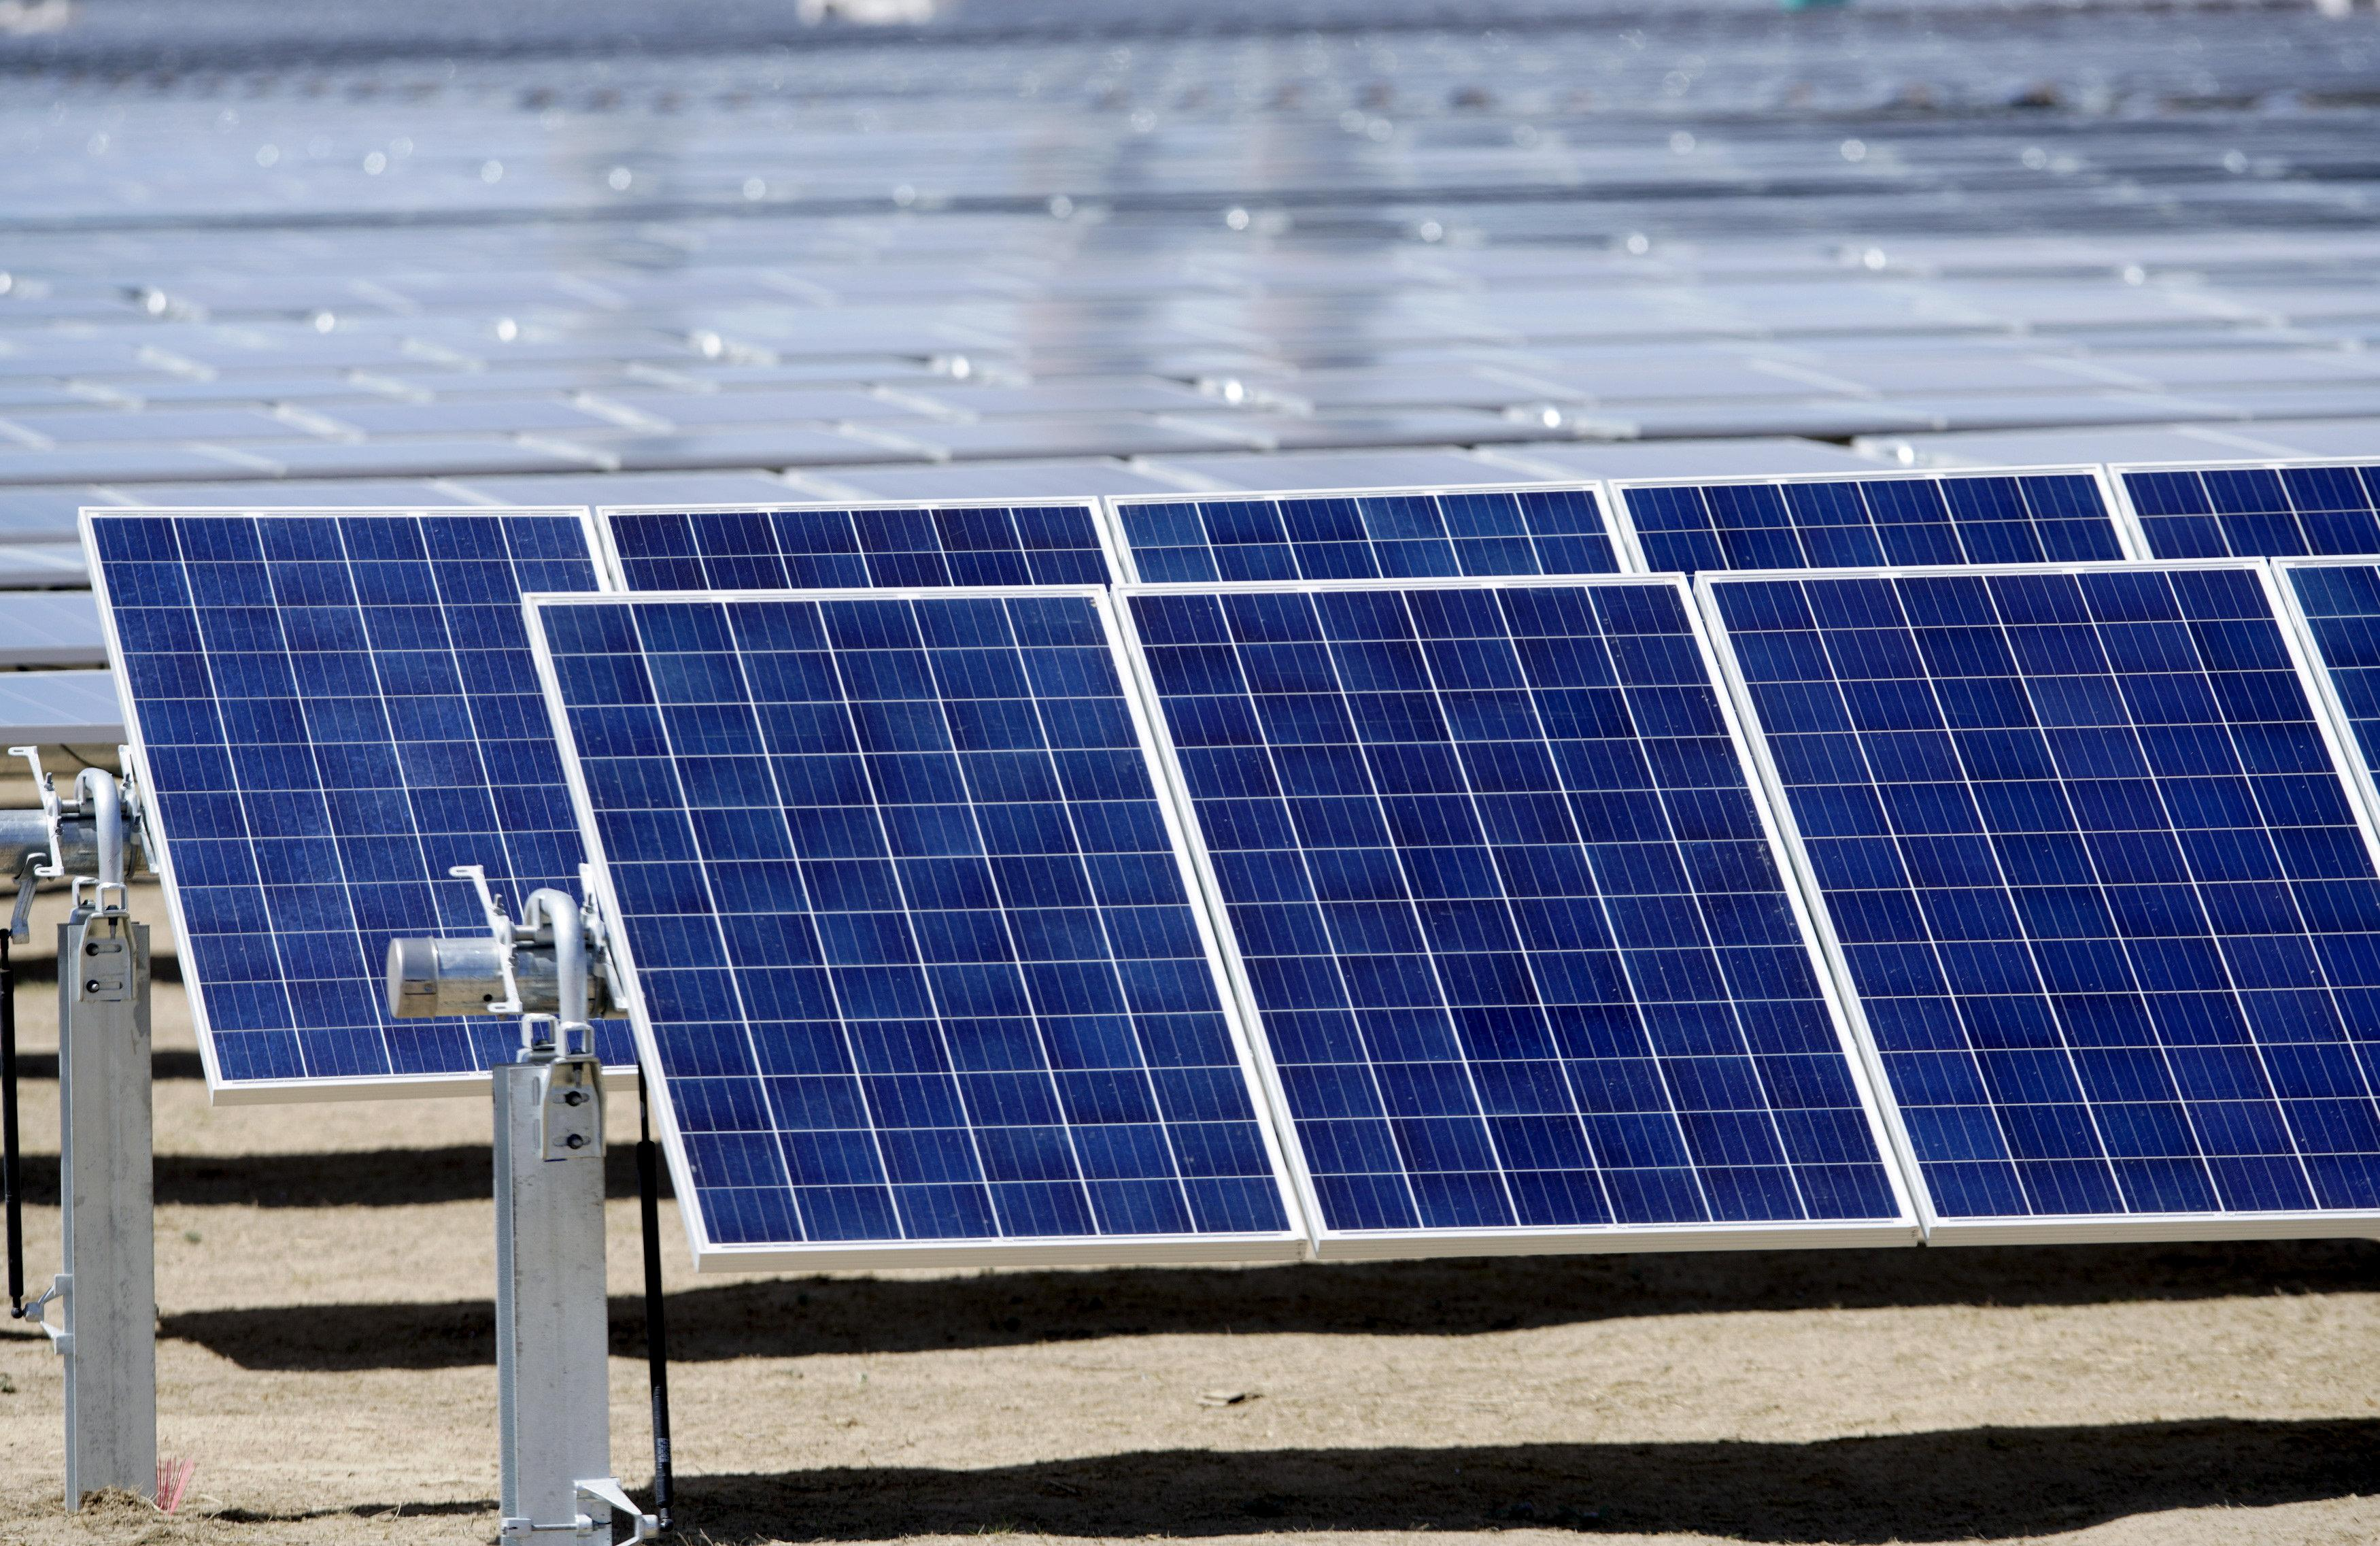 Billions in U.S. solar projects shelved after Trump panel tariff